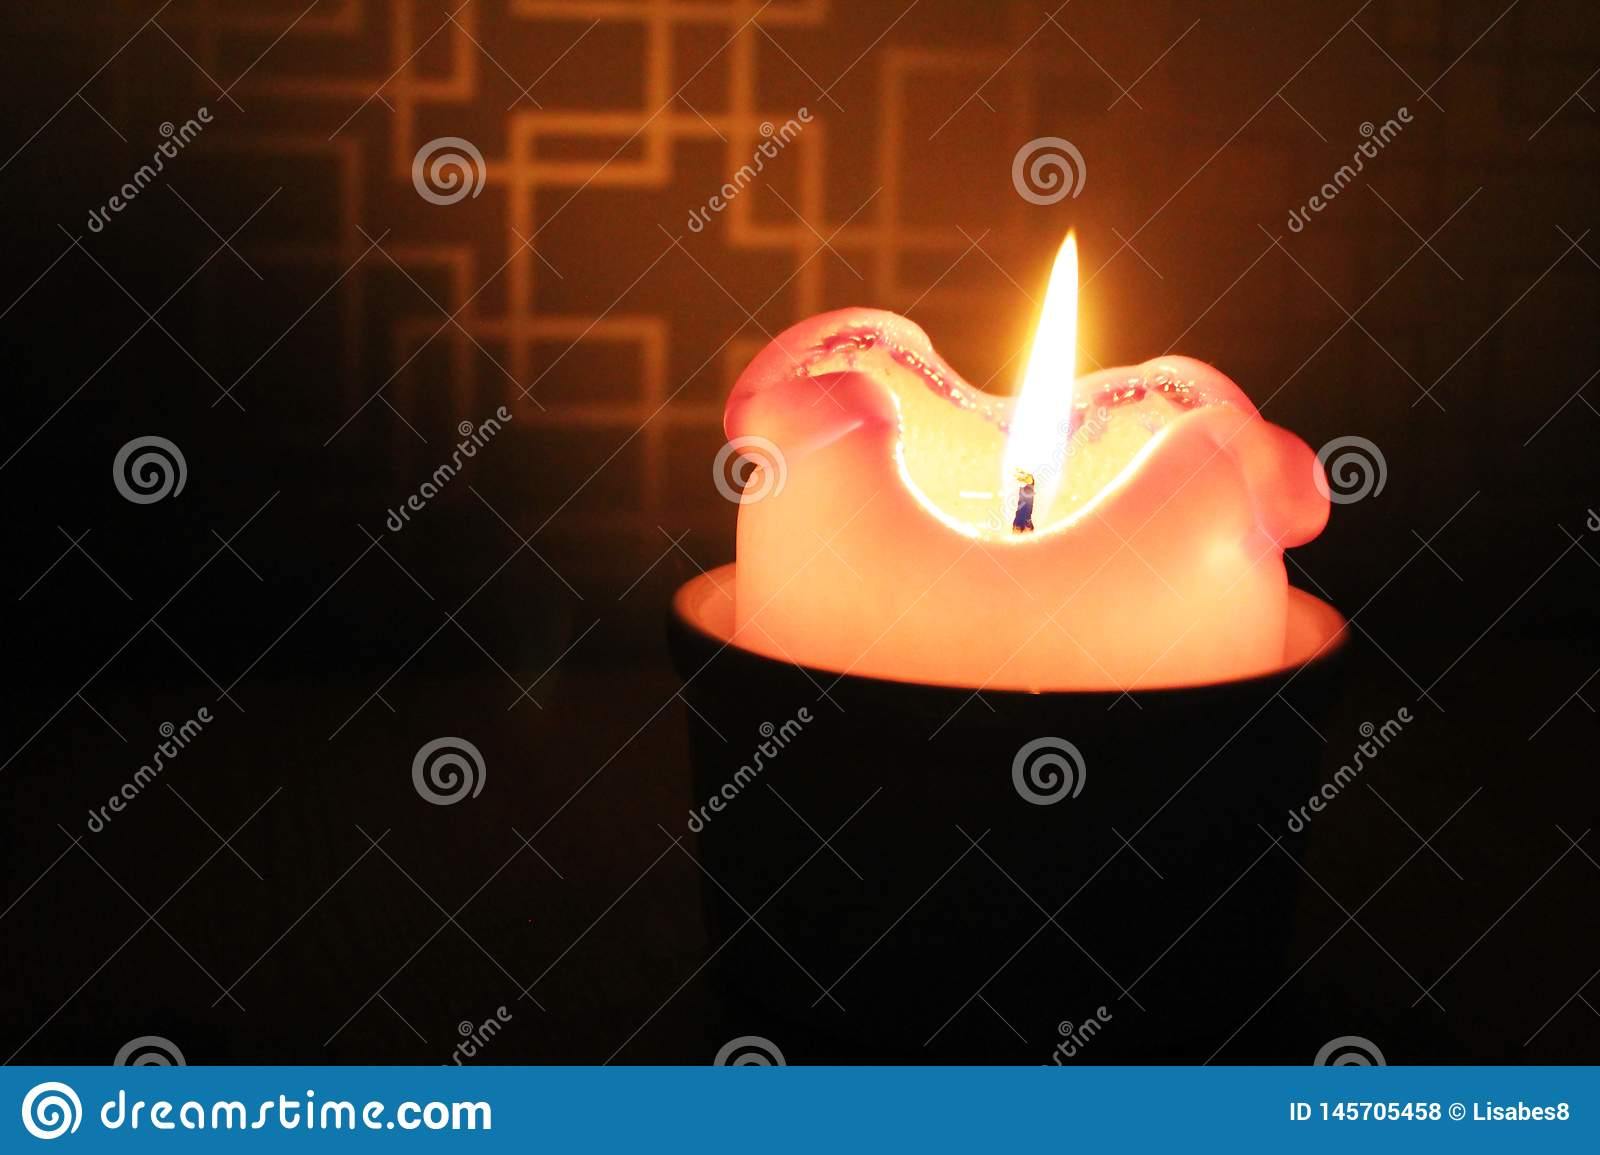 Burning candle on a dark blured background